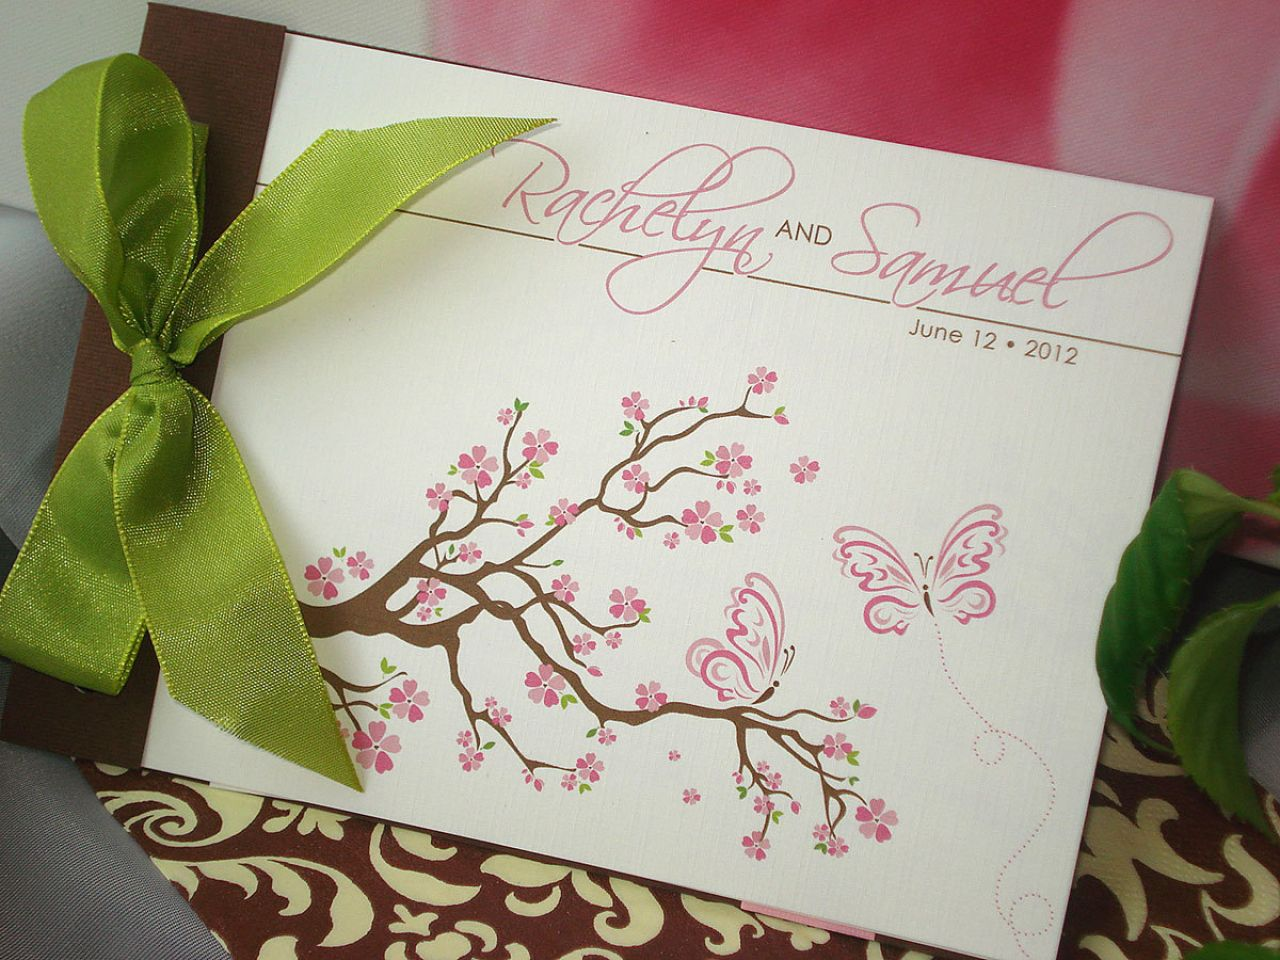 cherry-blossom-wedding-invitations-54a0f1d5787c6